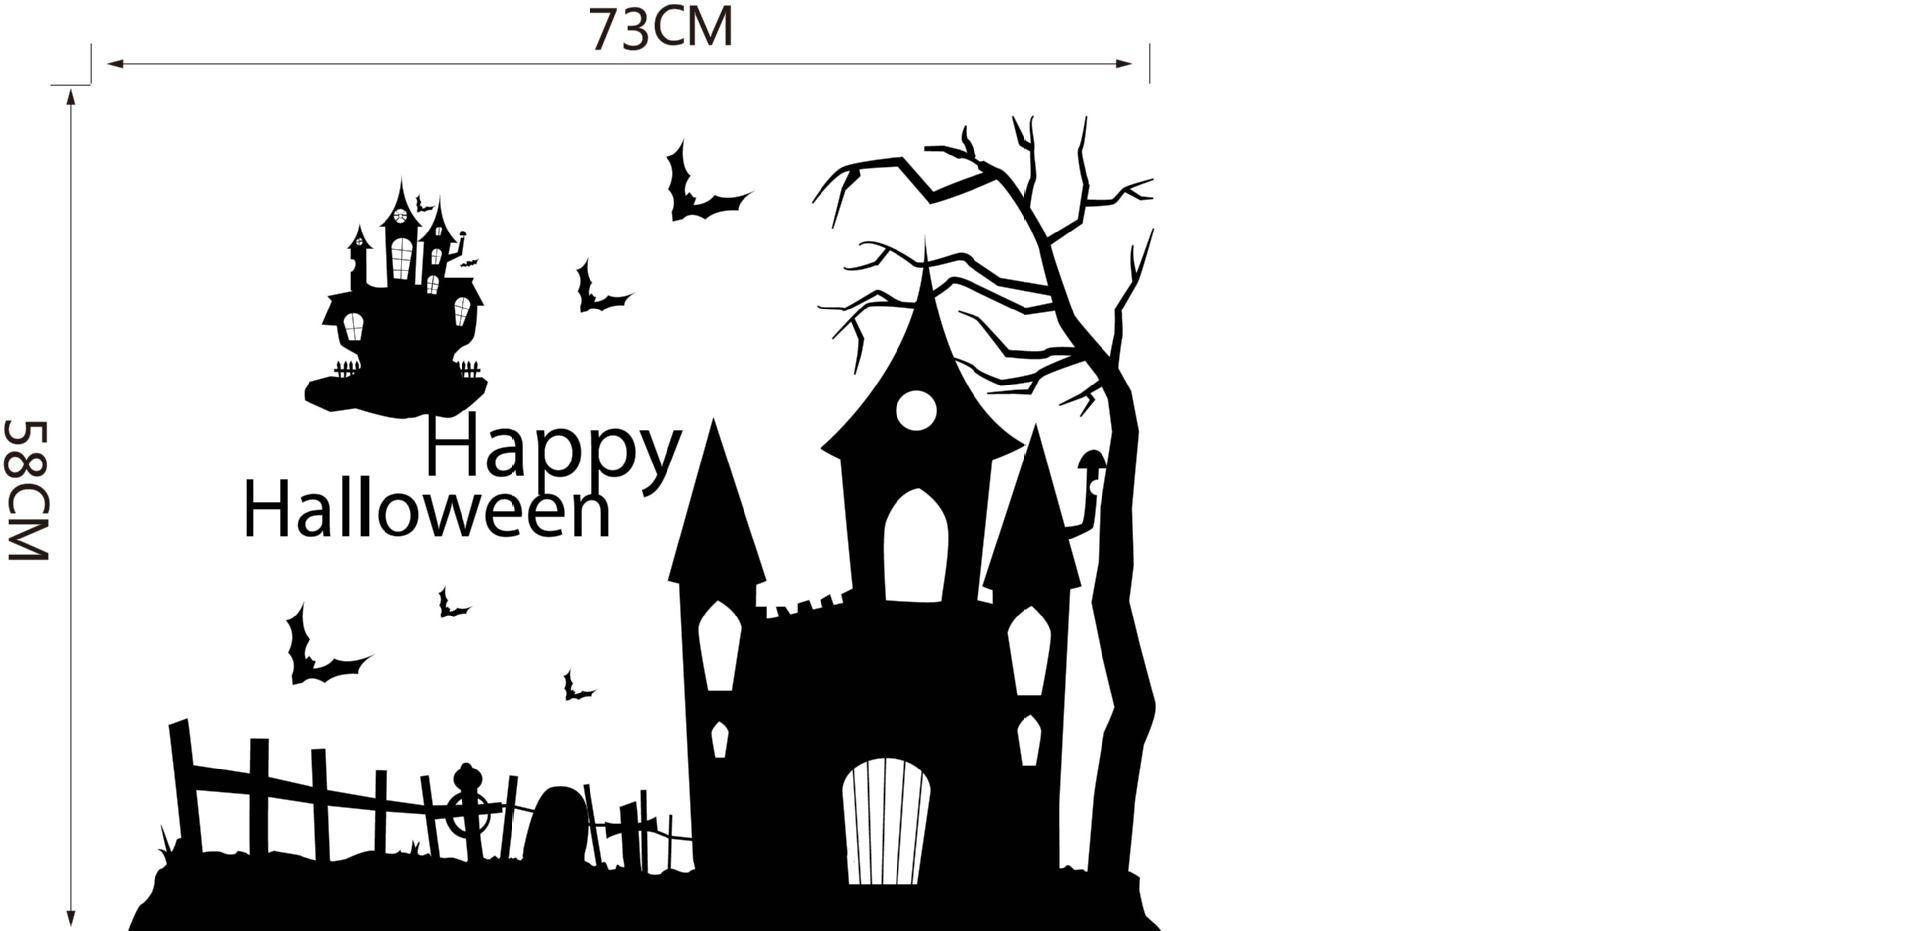 Black Ghost Castle Trees Bat Wall Stickers for Halloween Store Window Glass Decor Art Mural Poster Happy Halloween Wall Applique Quote Art